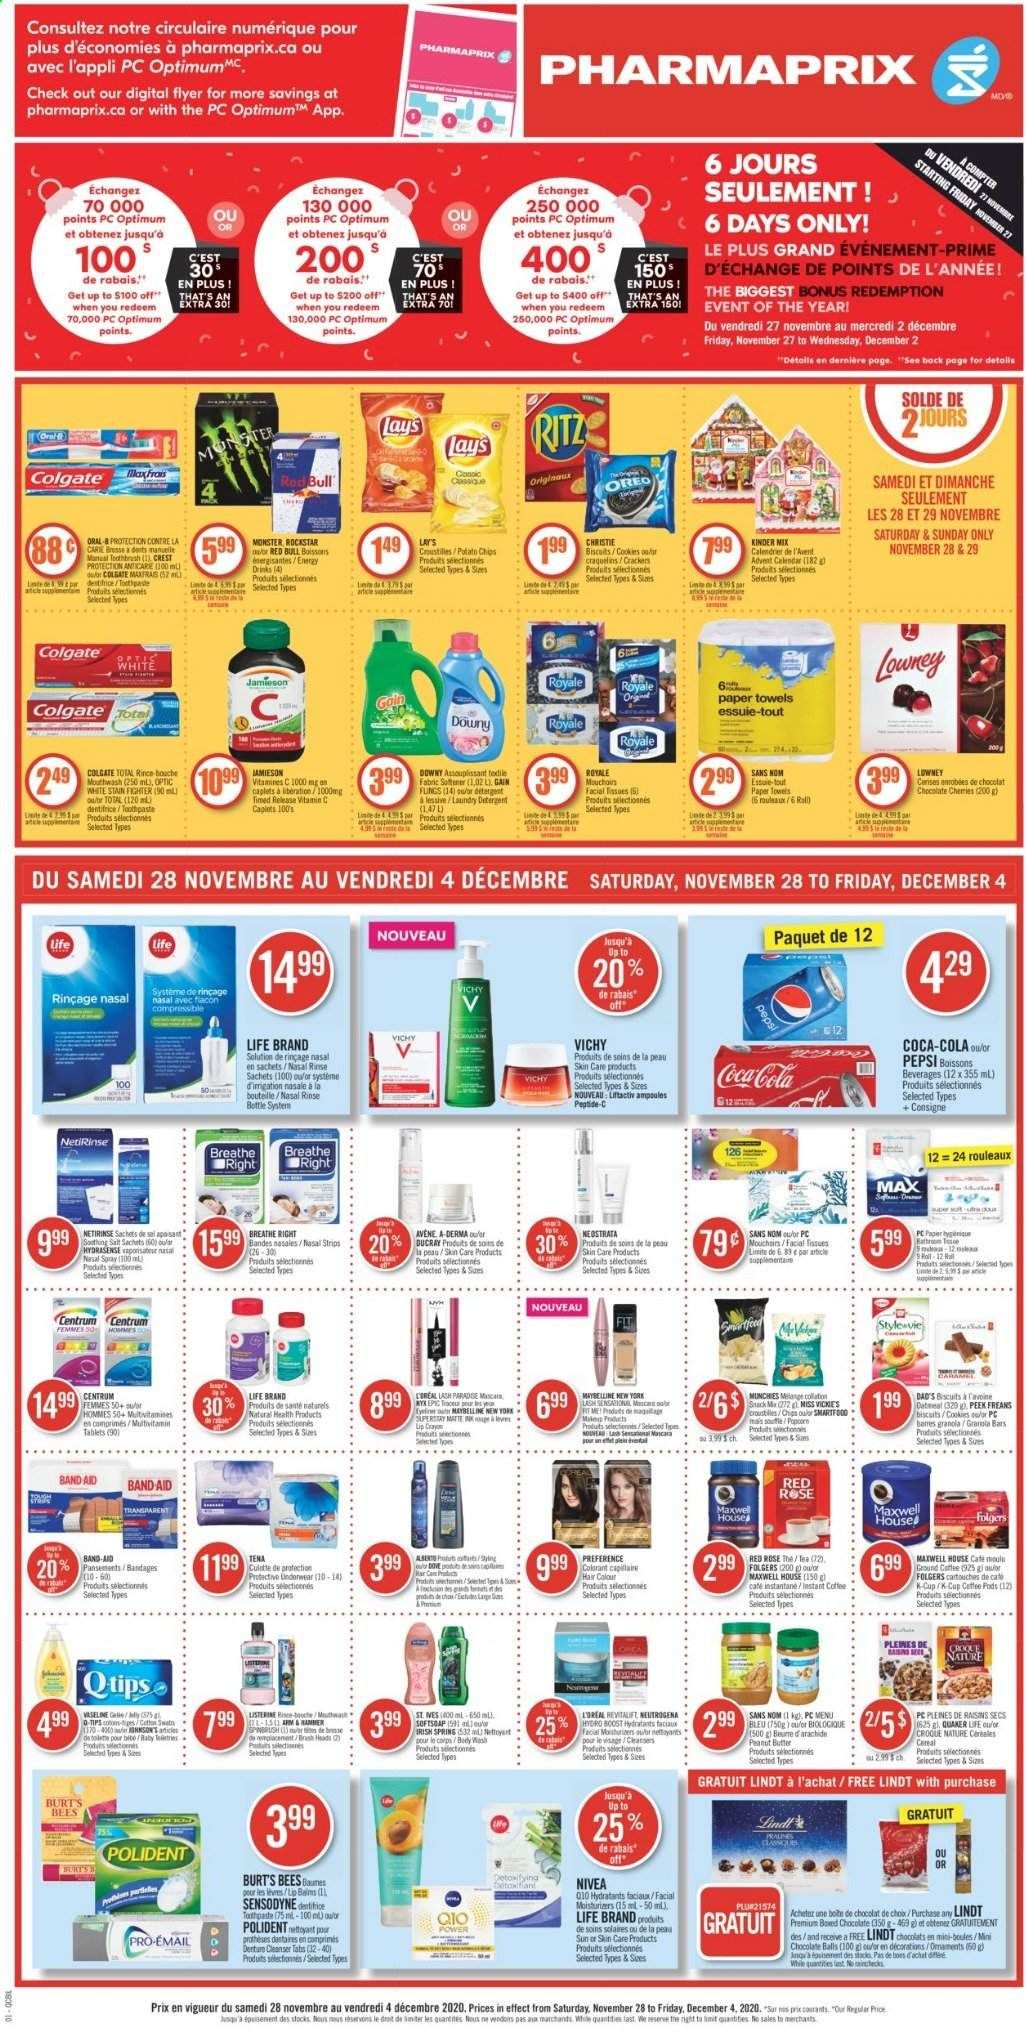 Pharmaprix Flyer - November 28, 2020 - December 04, 2020 - Sales products - band-aid, biscuits, body wash, brush, butter, calendar, cereals, cleanser, coca-cola, coffee pods, cookies, detergent, Dove, Downy, Colgate, facial tissues, Gain, granola, granola bars, L'Oréal, Listerine, makeup, mascara, Maxwell House, Maybelline, multivitamin, Neutrogena, raisins, Softsoap, tea, toothbrush, underwear, Vichy, vitamin c, instant coffee, potato chips, pralines, cherries, paper towel, peanut butter, peanuts, Pepsi, Nivea, oatmeal, Oreo, ornament, chips, chocolate, toothpaste, snack, softener, salt, monster, Lay's, Sensodyne, Lindt, mouthwash, tissues, Tablets, laundry detergent, Folgers, ground coffee. Page 1.